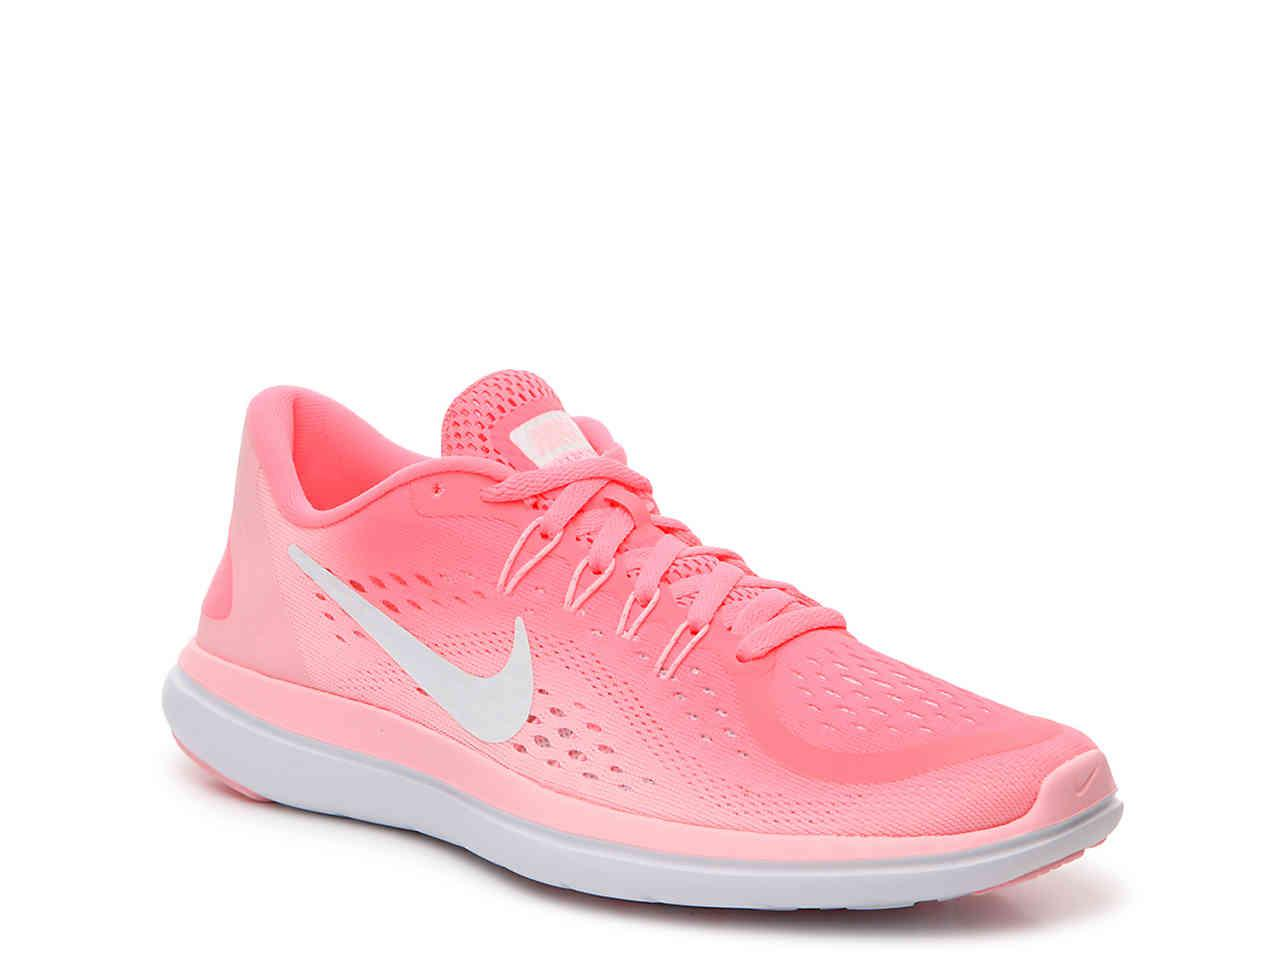 223873626481e ... promo code for lyst nike flex 2017 rn lightweight running shoe in pink  save a4b48 e4f5c